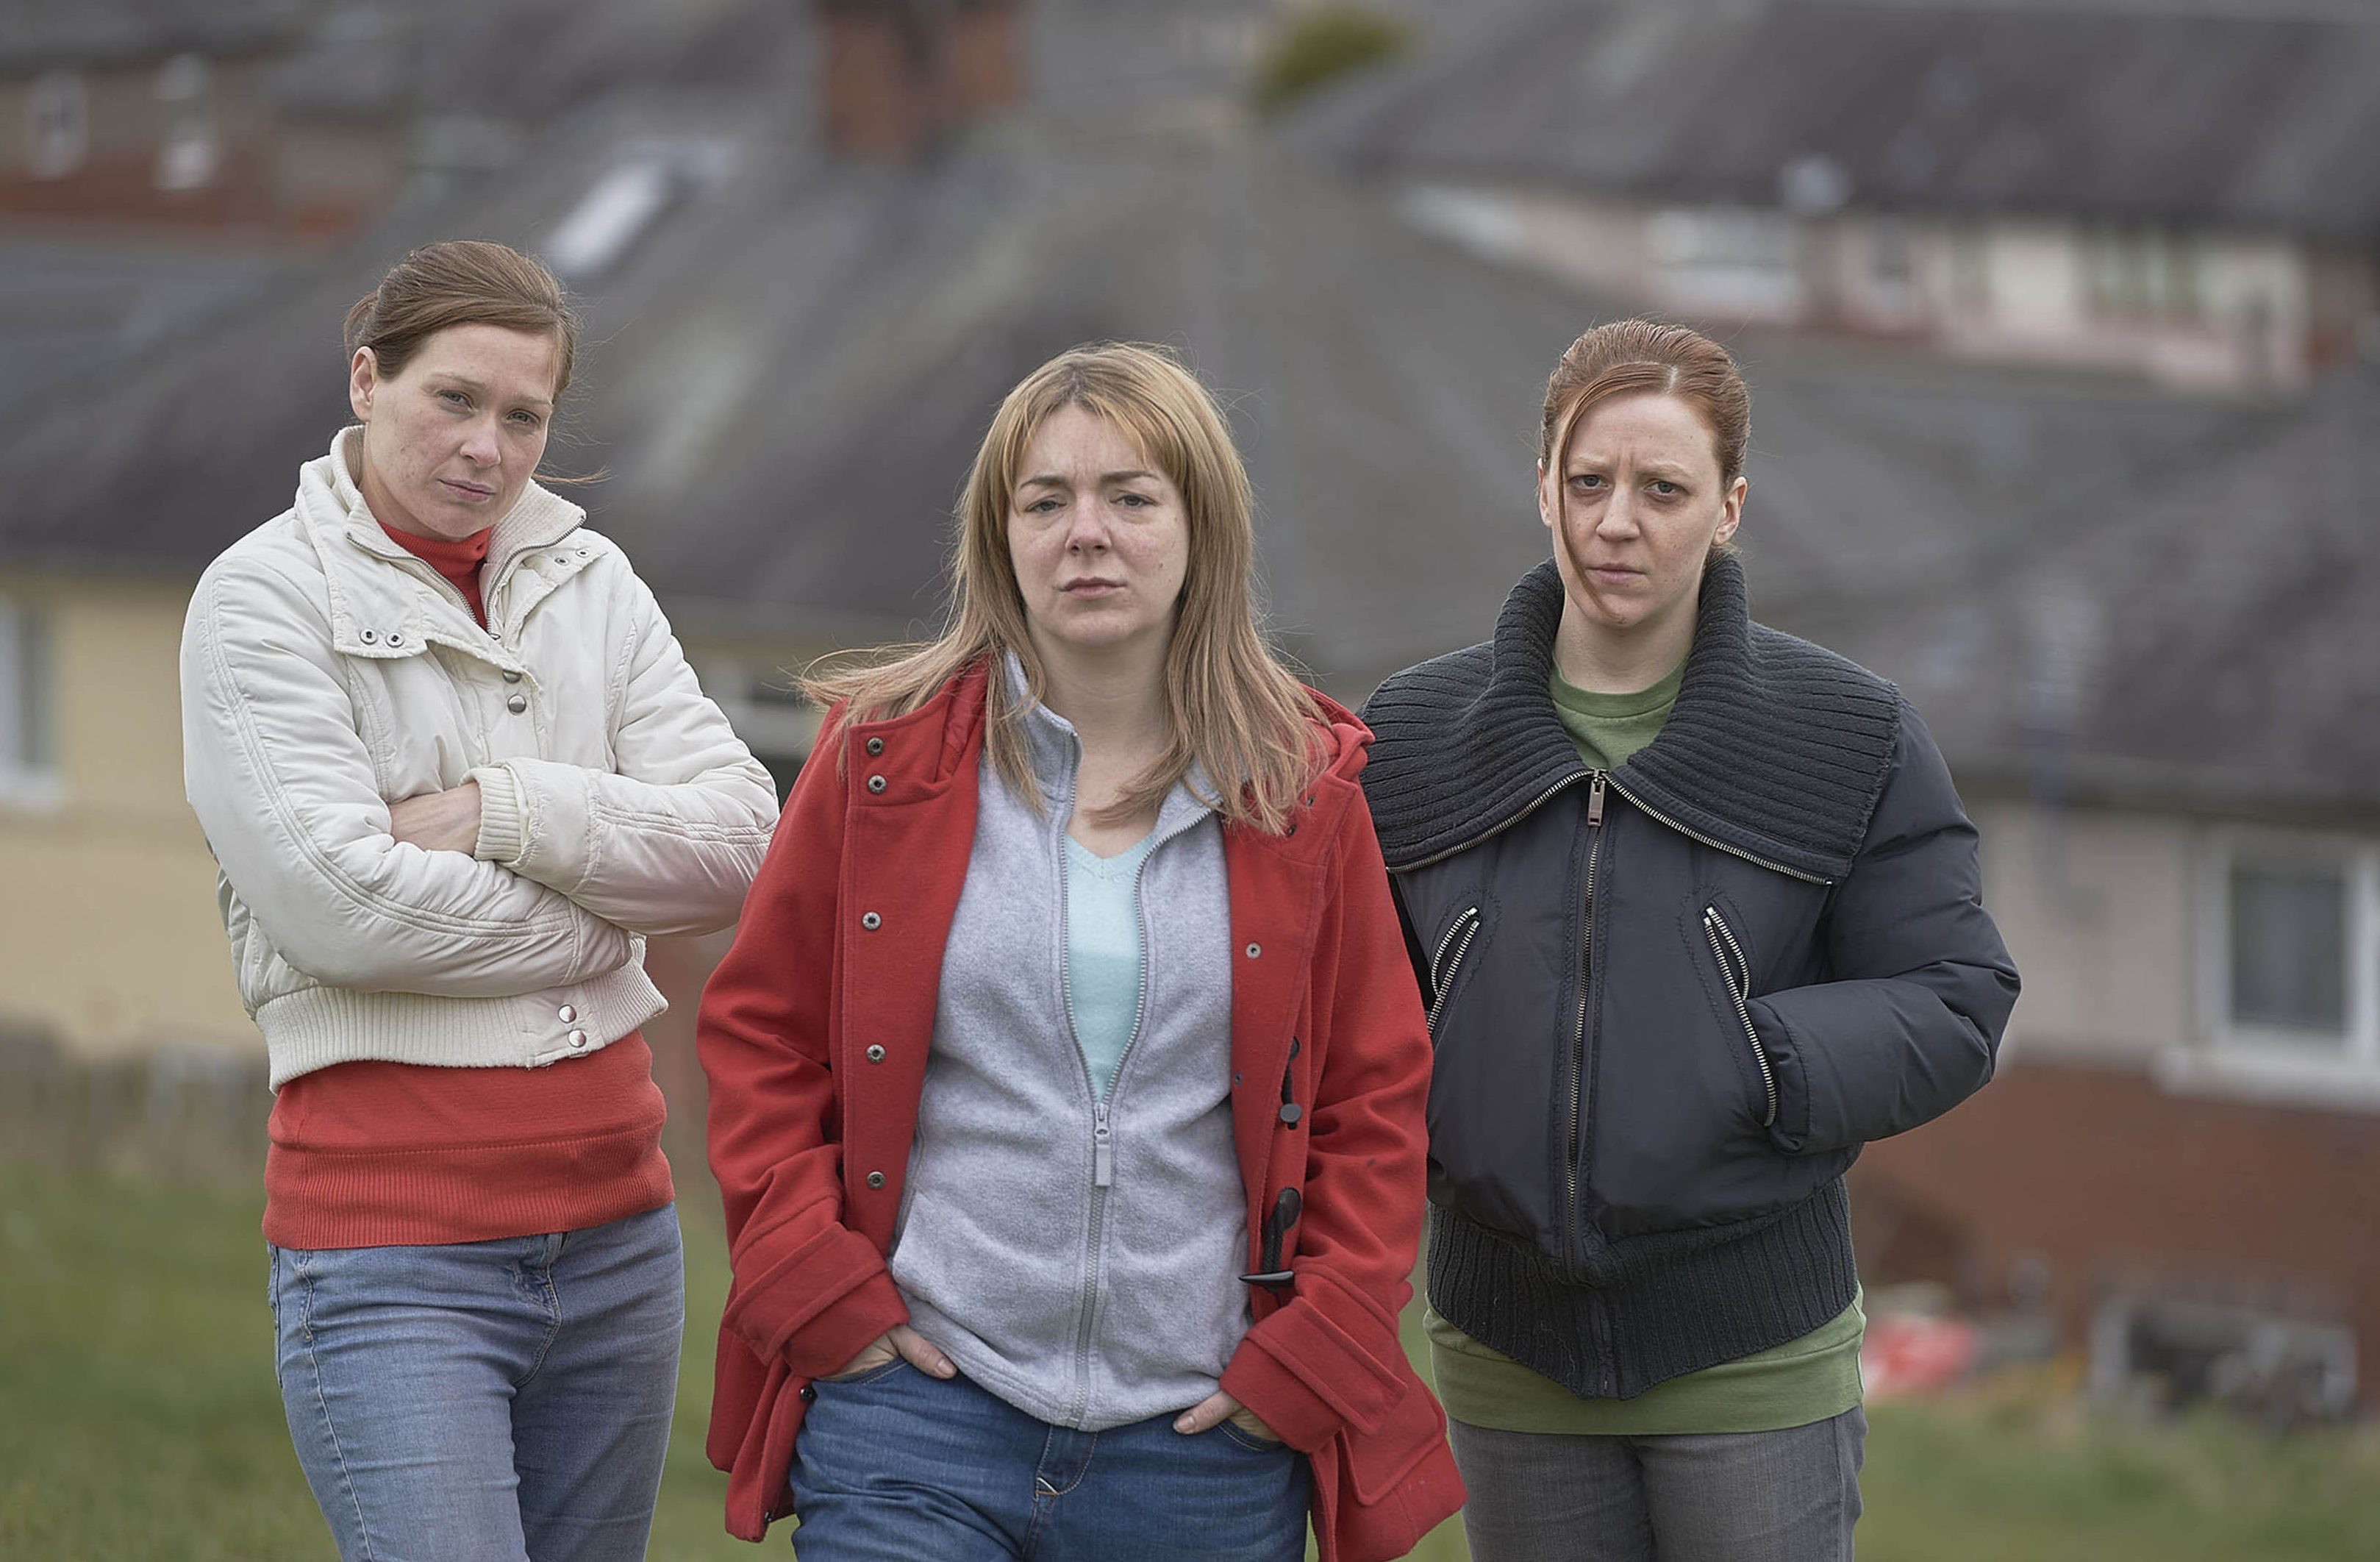 Pictured from The Moorside. (left - right) Sian Brooke as Natalie Brown, Sheridan Smith as Julie Bushby, Gemma Whelan as Karen Matthews.